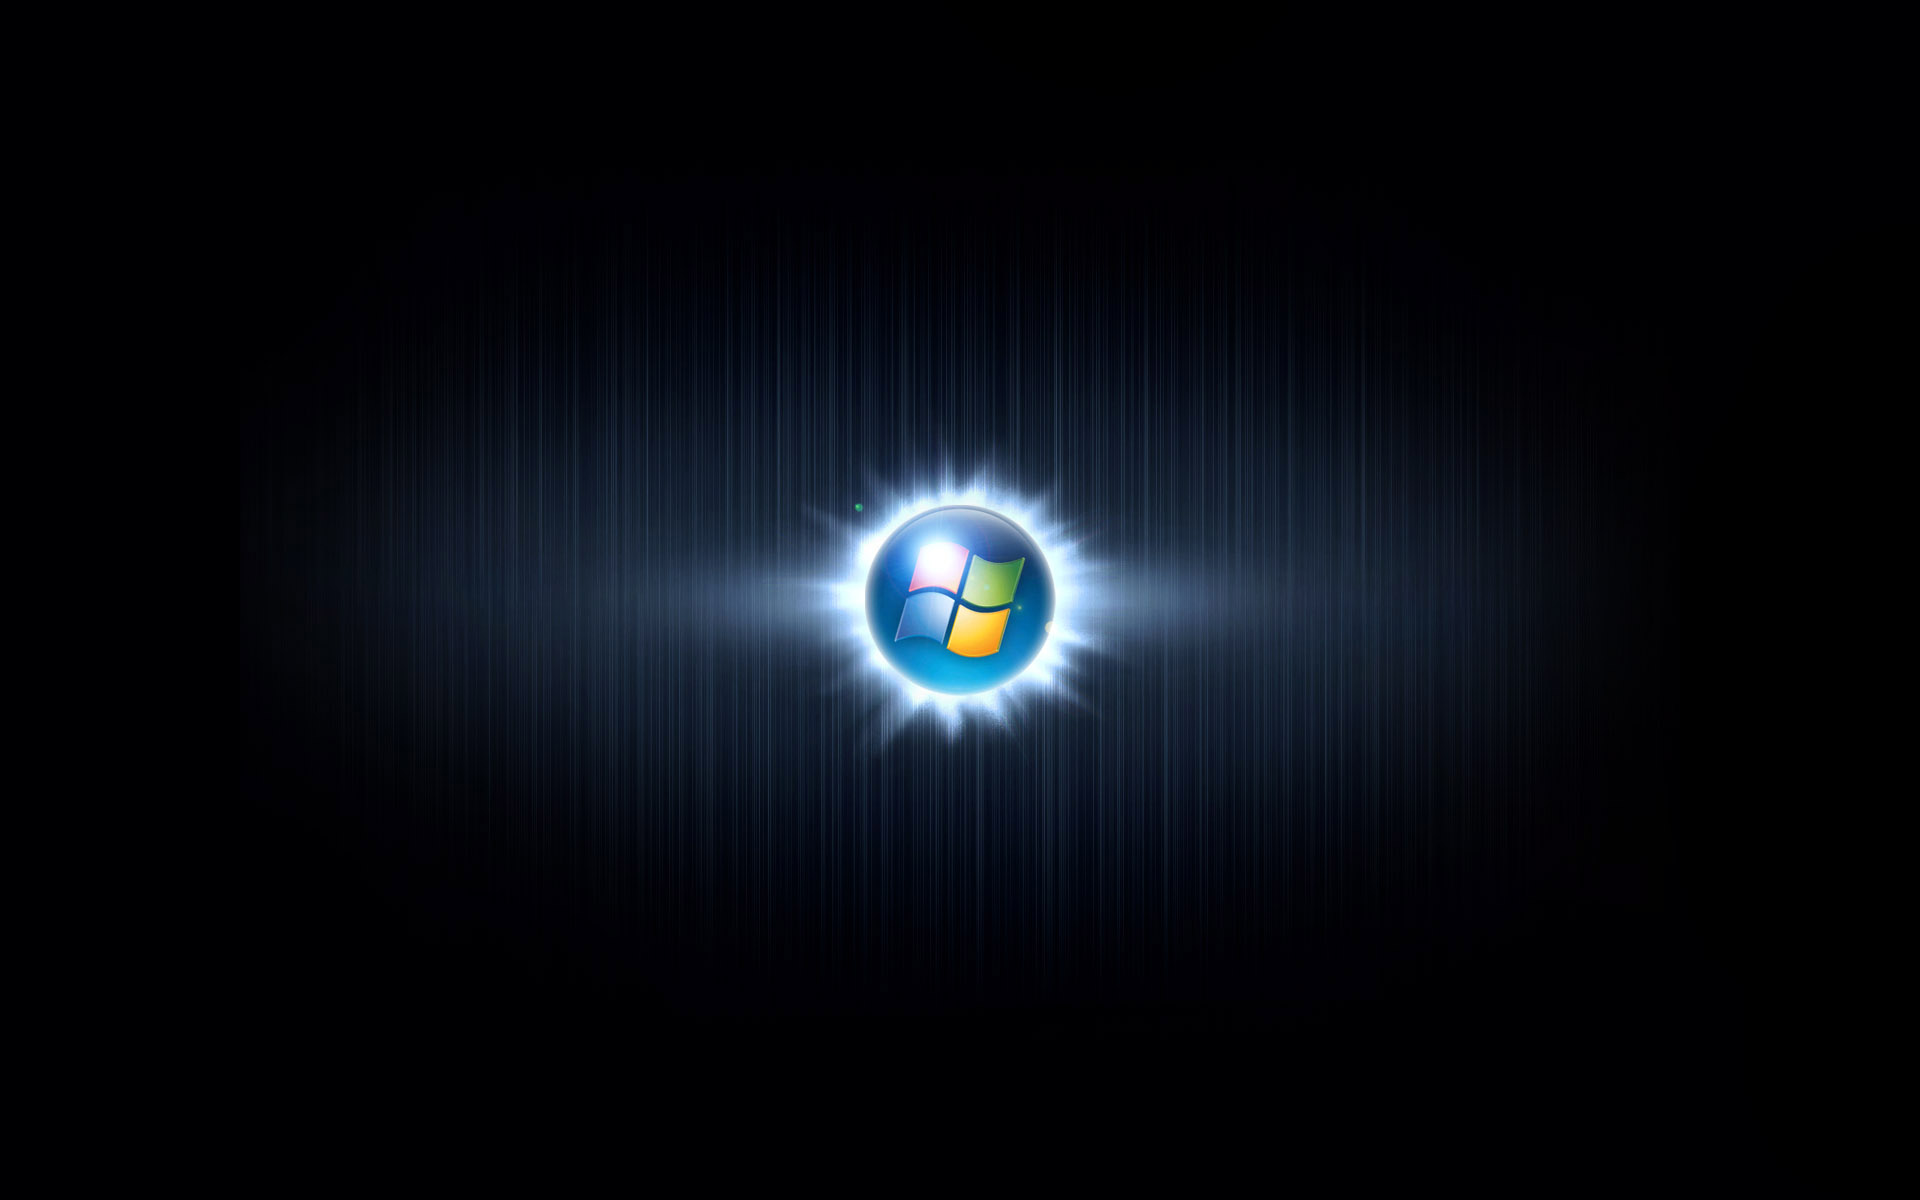 Wallpaper For Windows In HD For Download 1920x1200